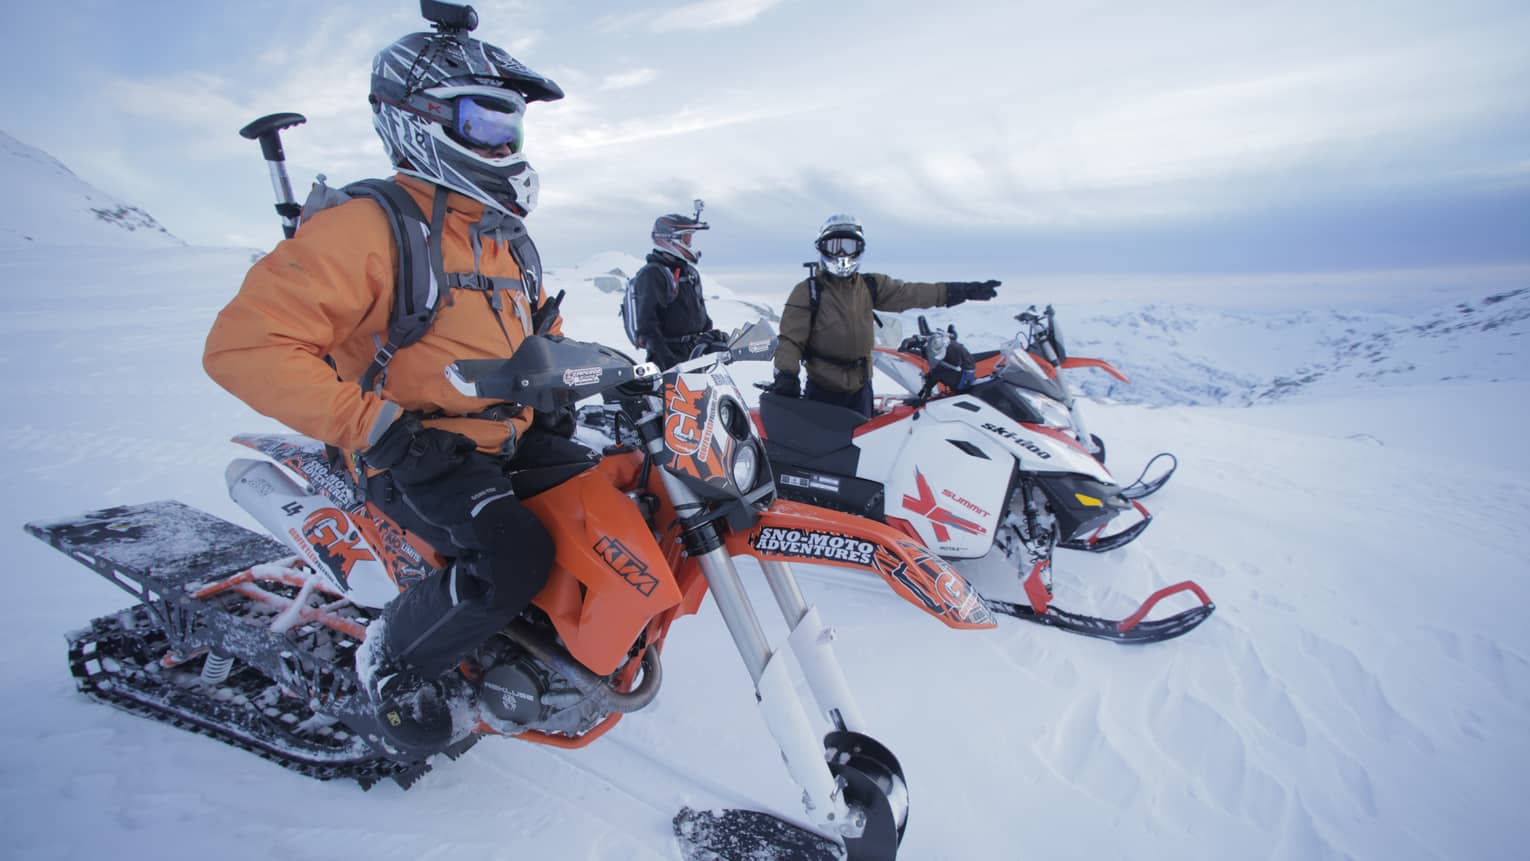 Three people wearing orange snowsuits, large helmets sit on snowmobiles, one points down mountain